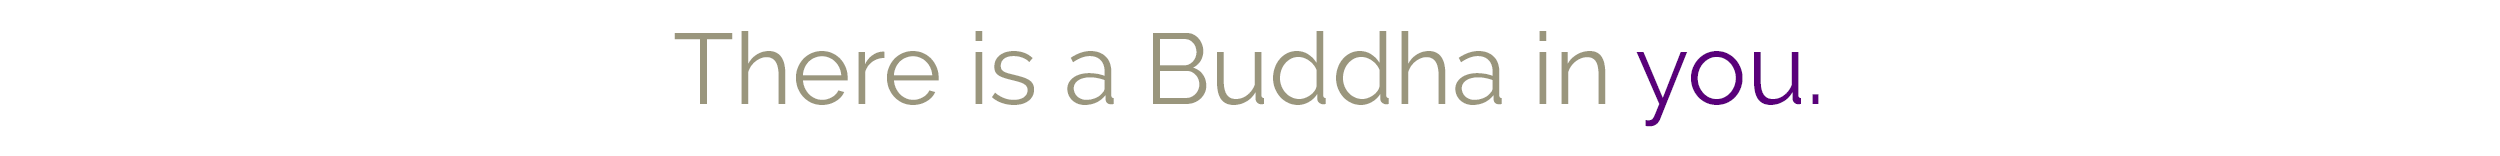 buddha-in-you.png